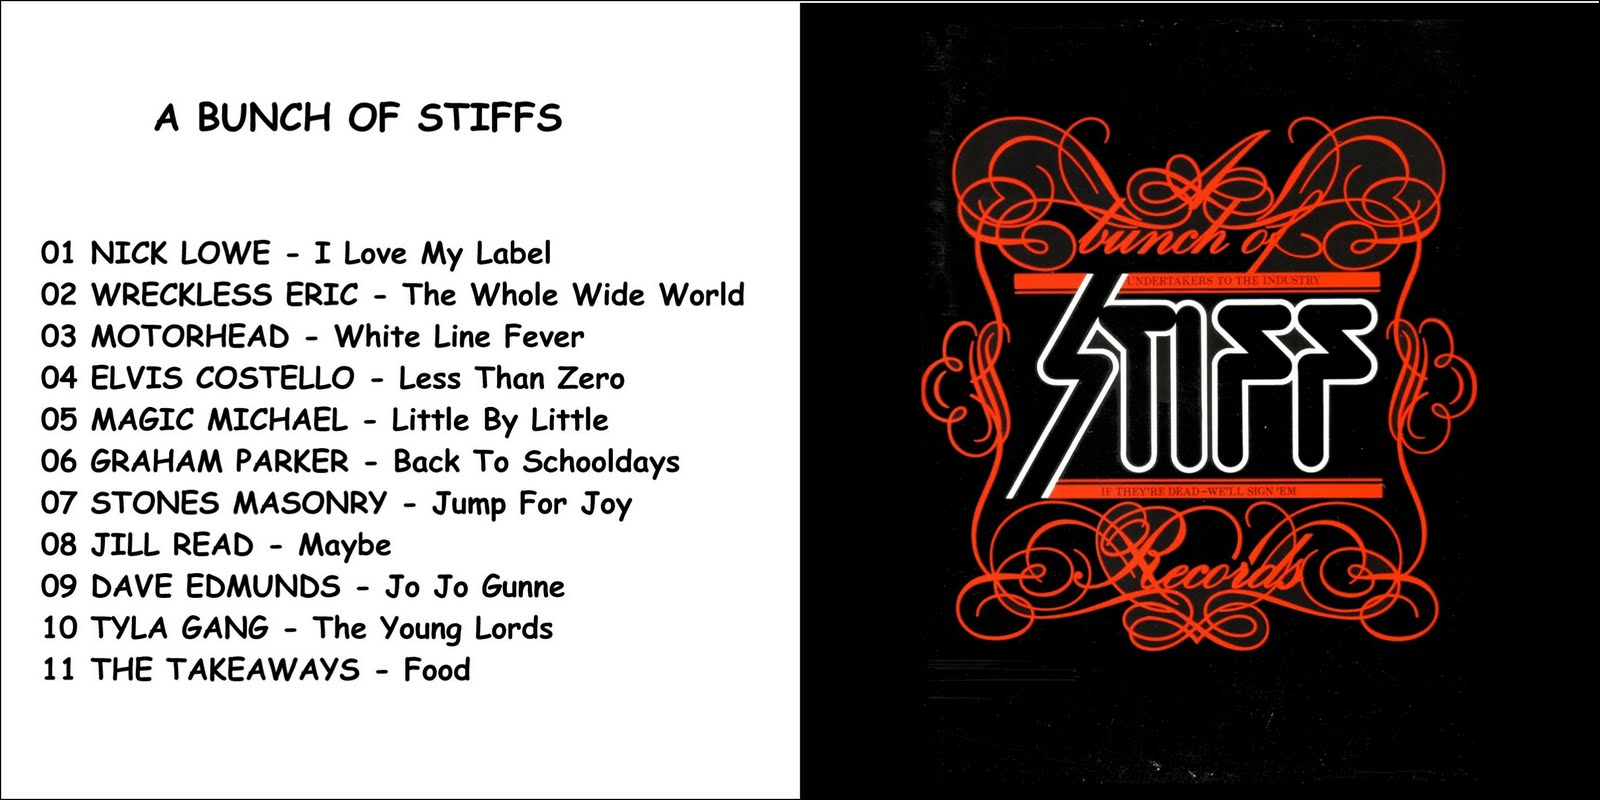 Stiffs, The - The Punk Collection